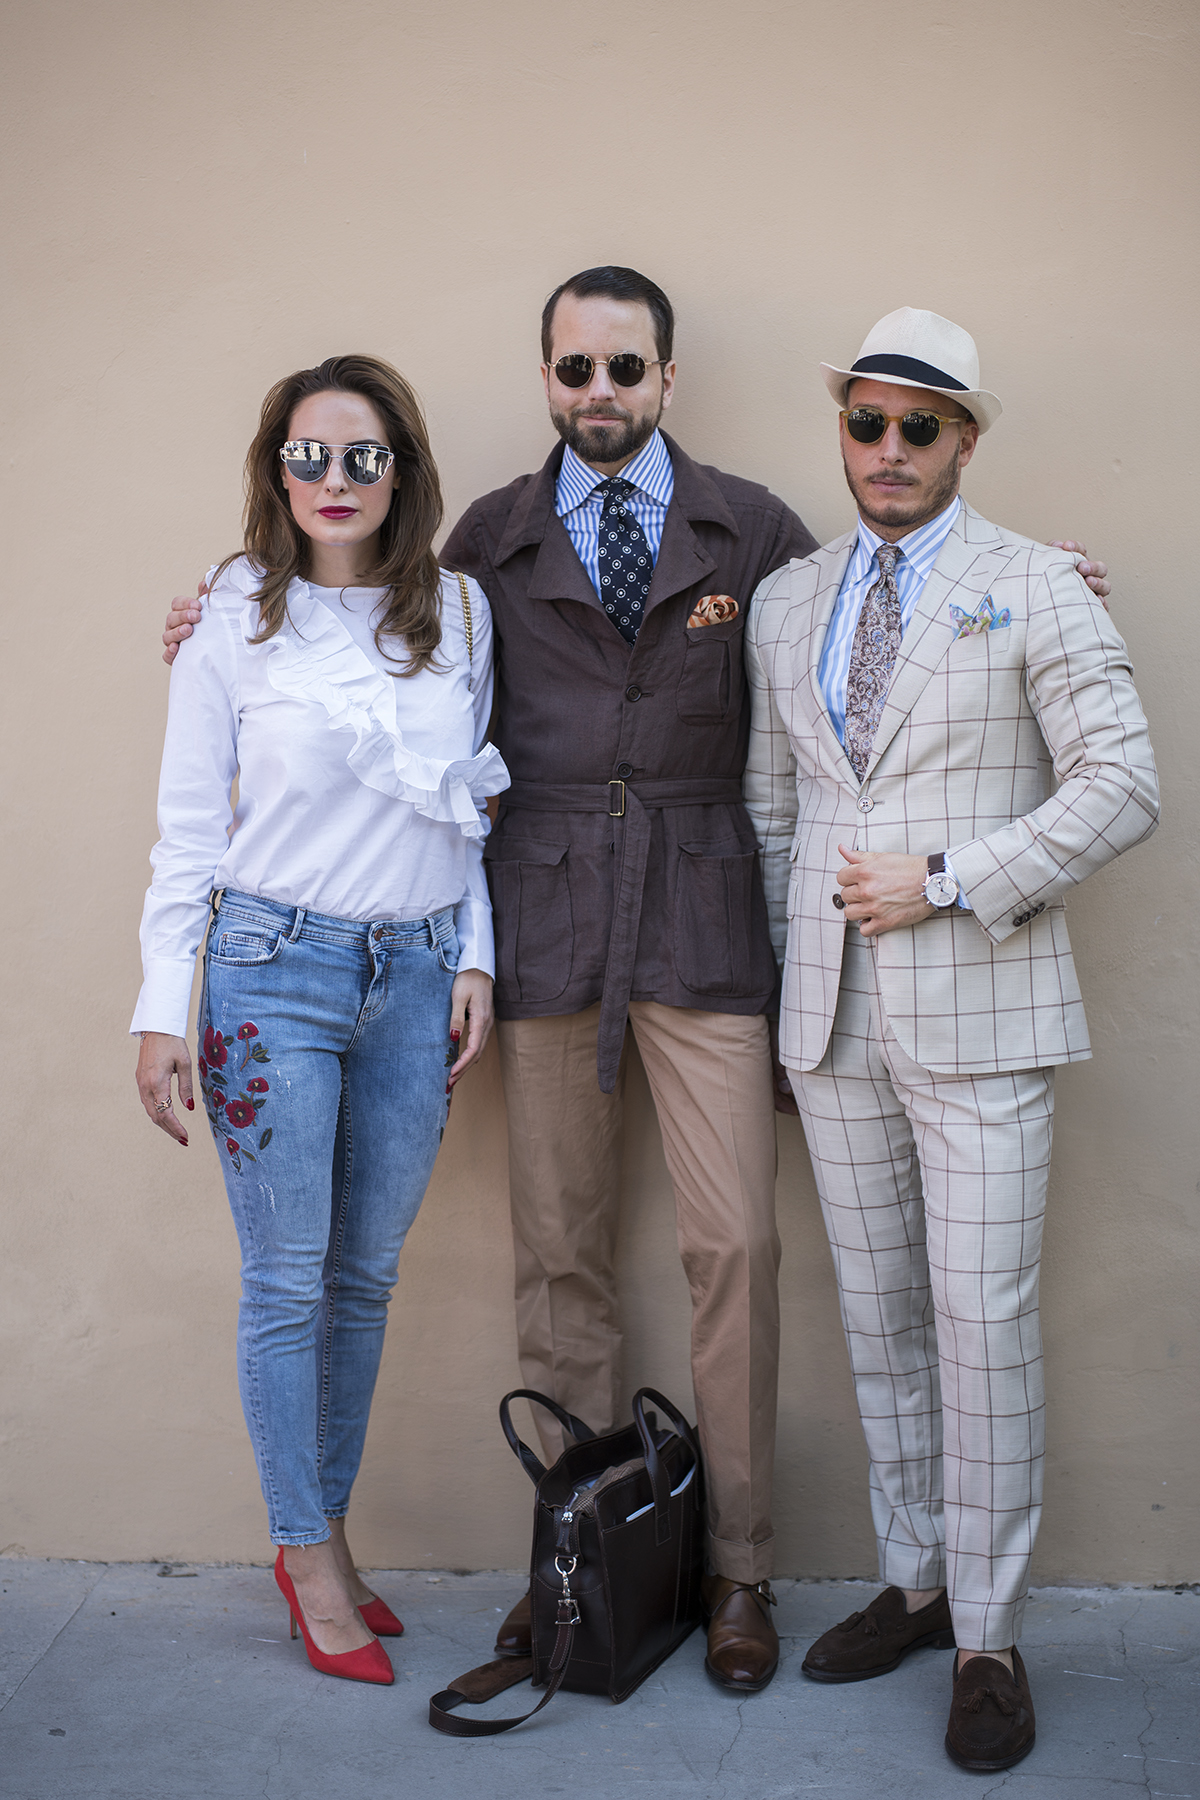 pitti uomo 92 streetstyle styleforum pitti 92 streetstyle styleforum pitti uomo 92 men's style styleforum pitti uomo 92 men's streetstyle styleforum pitti men's streetstyle styleforum pitti men's style styleforum pitti 92 men's streetstyle styleforum best pitti streetstyle best pitti uomo streetstyle best pitti 92 streetstyle best pitti uomo 92 streetstyle